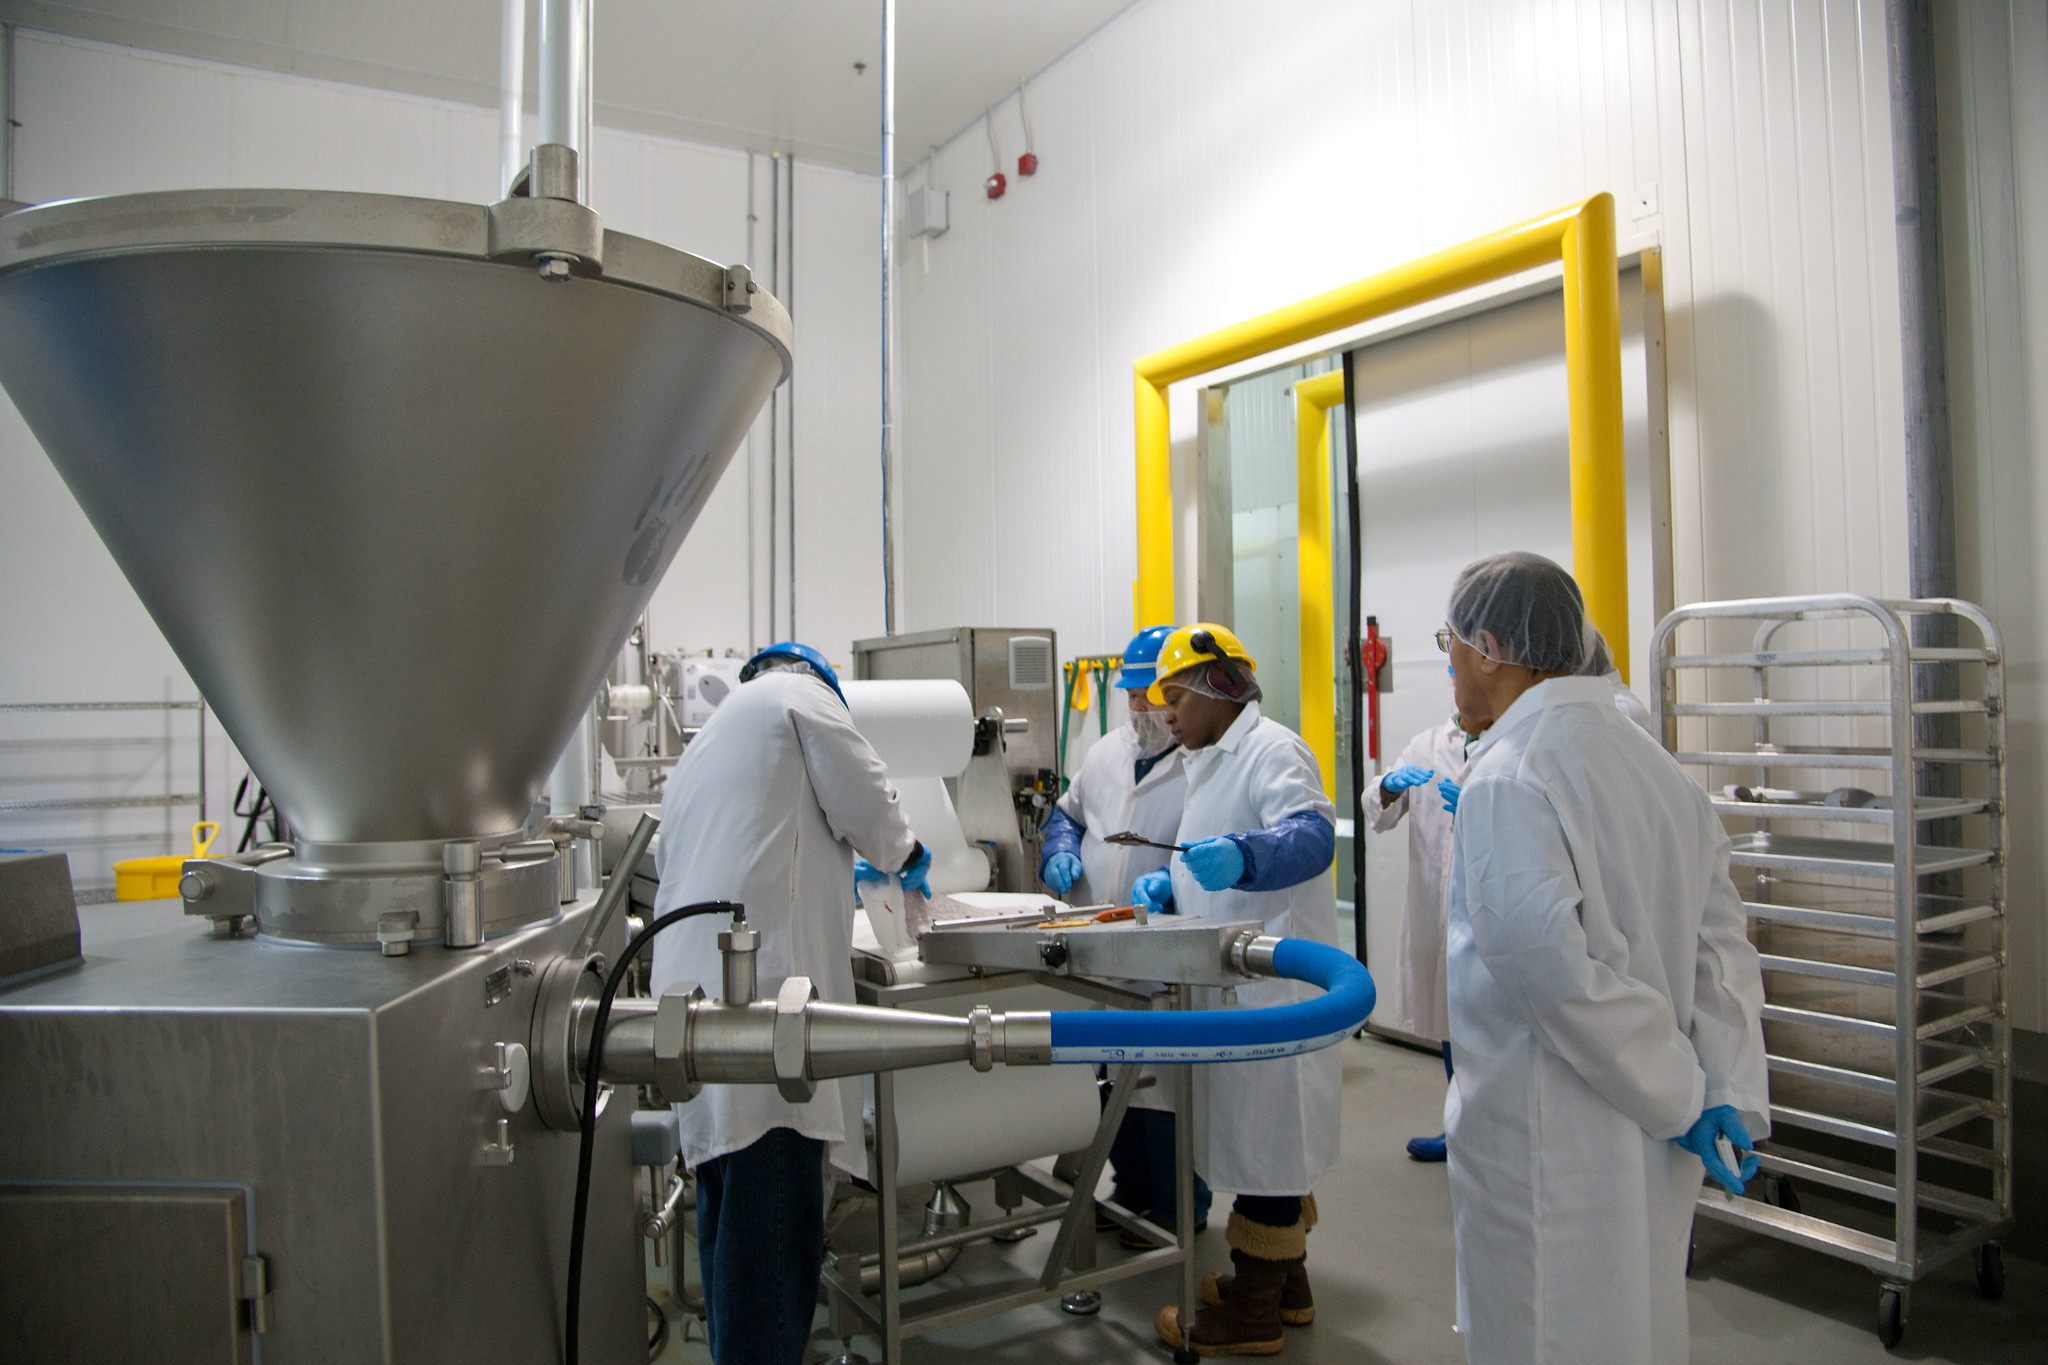 Workers in white coats, blue gloves, yellow and blue hard hats work at a large stainless steel machine with a hopper, a pipe and a chute, in a large room with white walls.